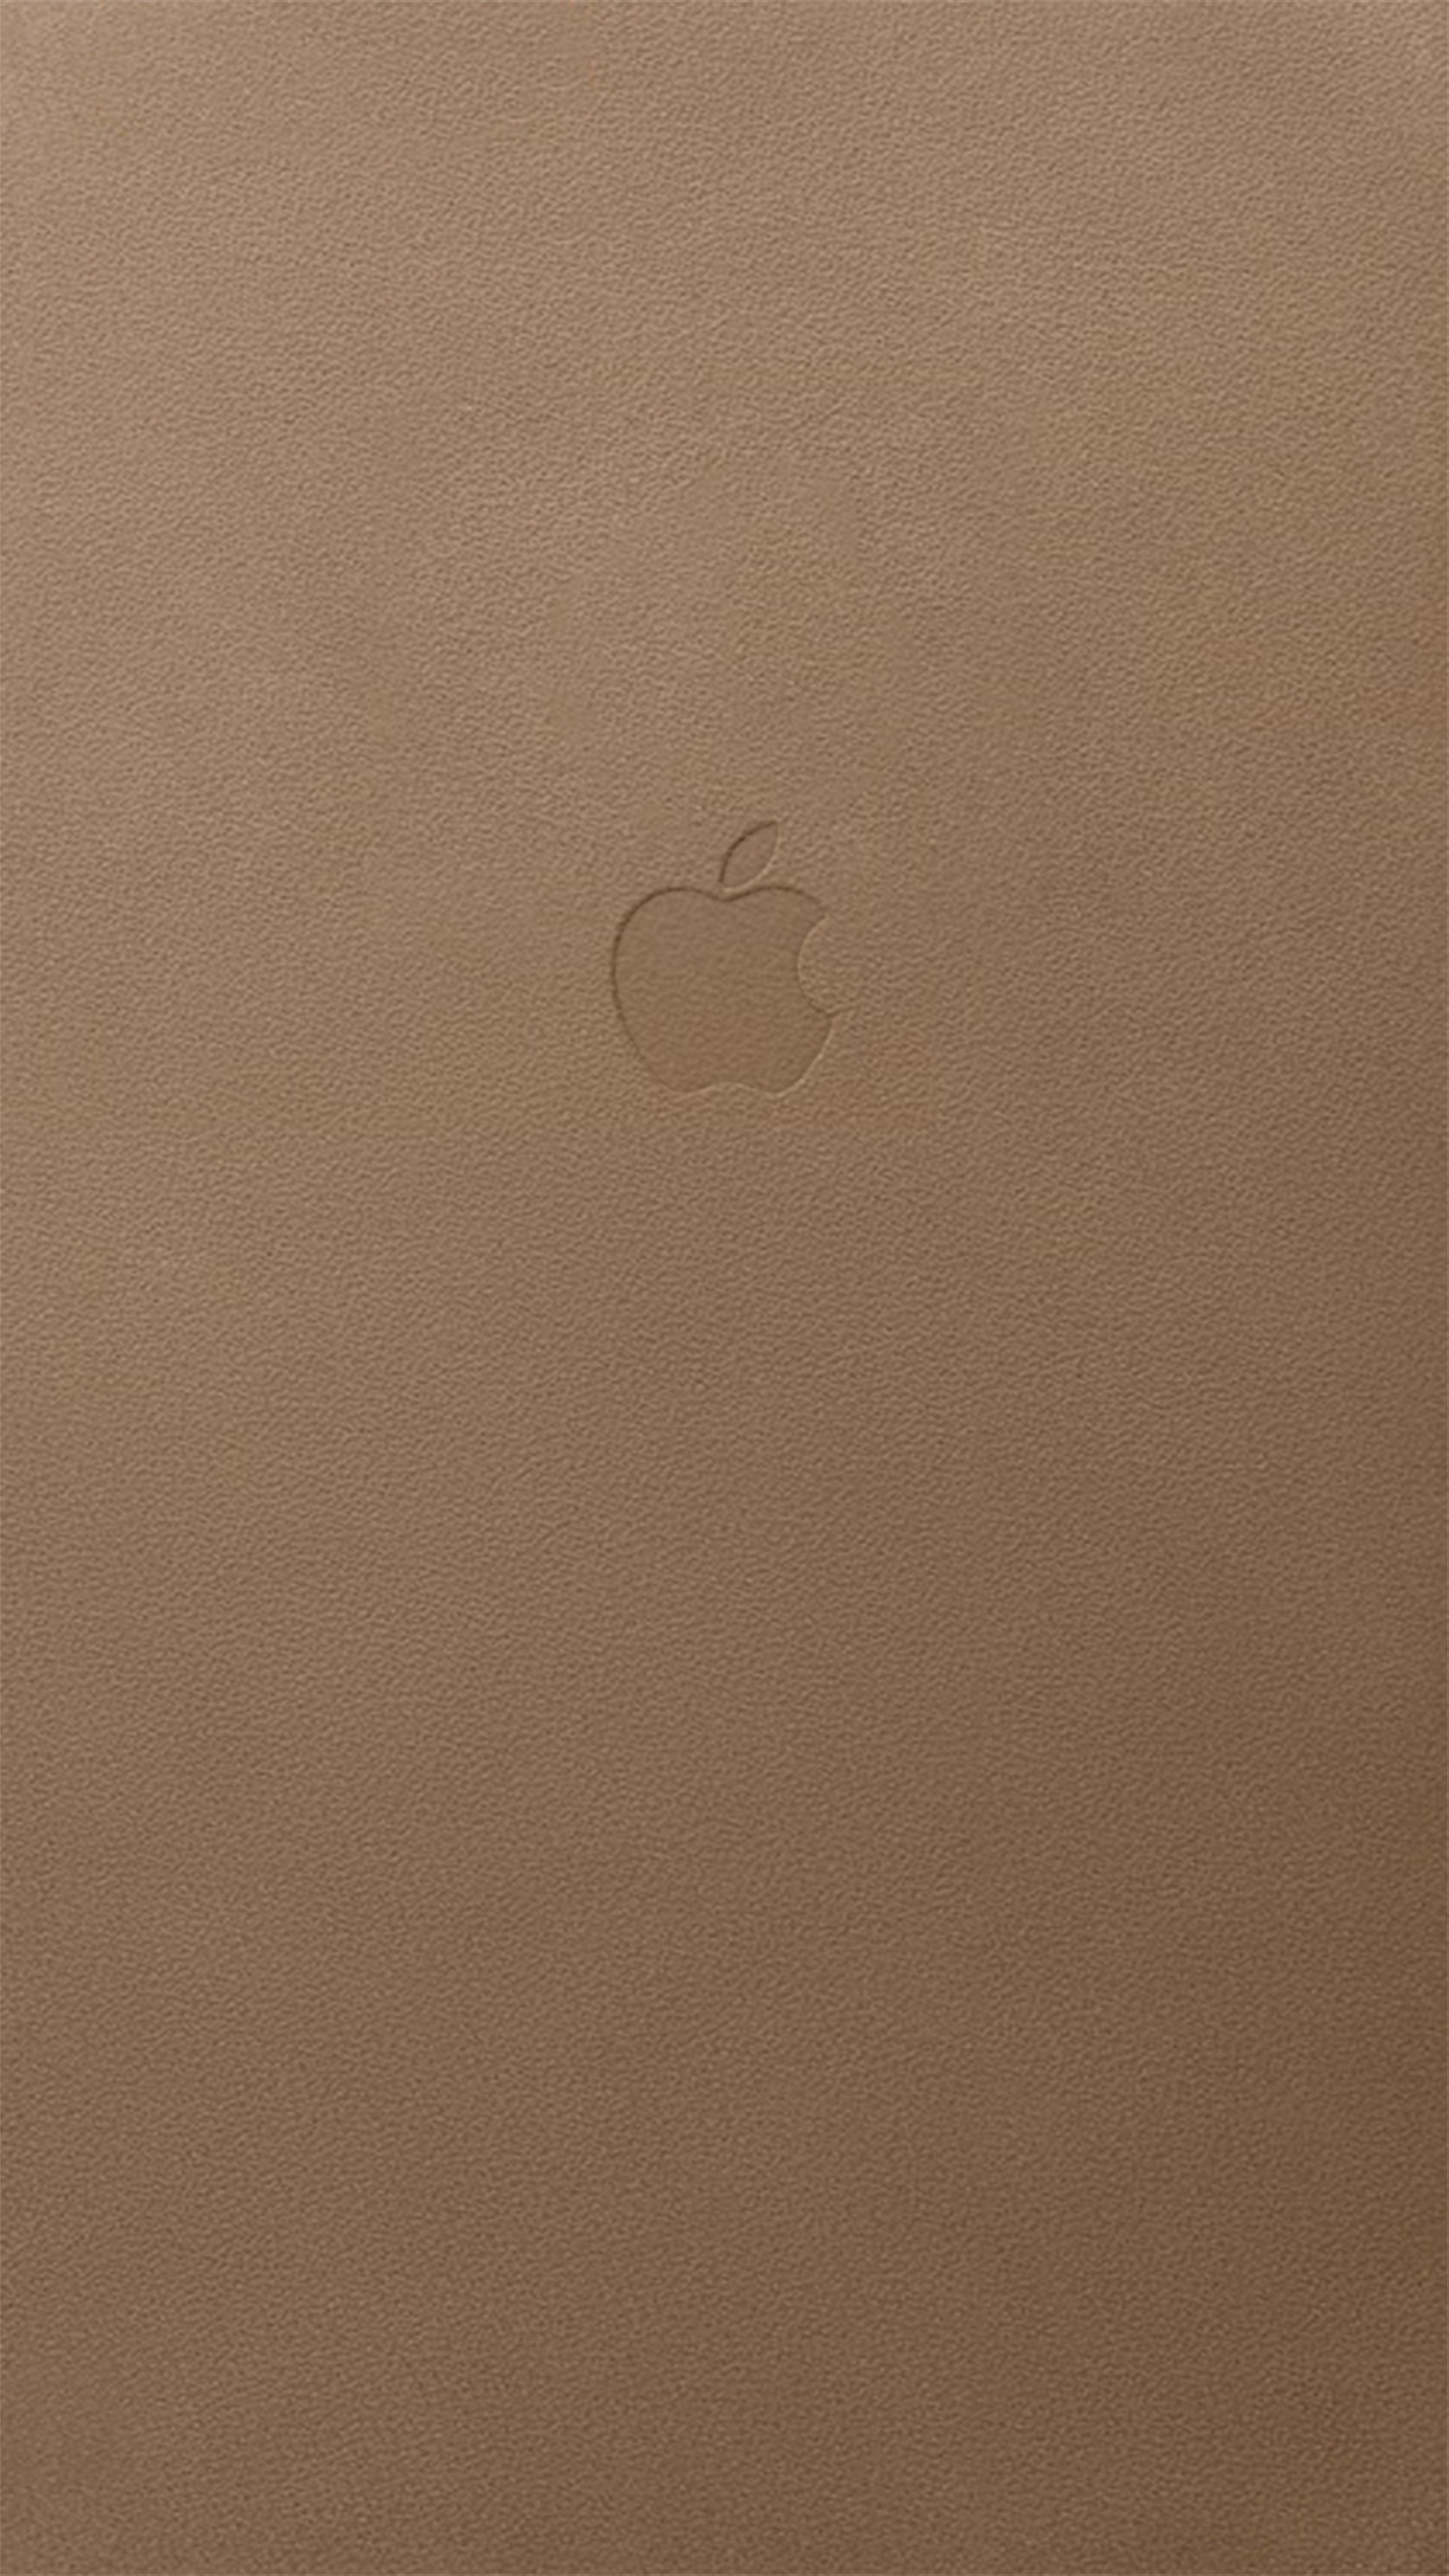 Res: 1497x2662, Brown By JasonZigrino